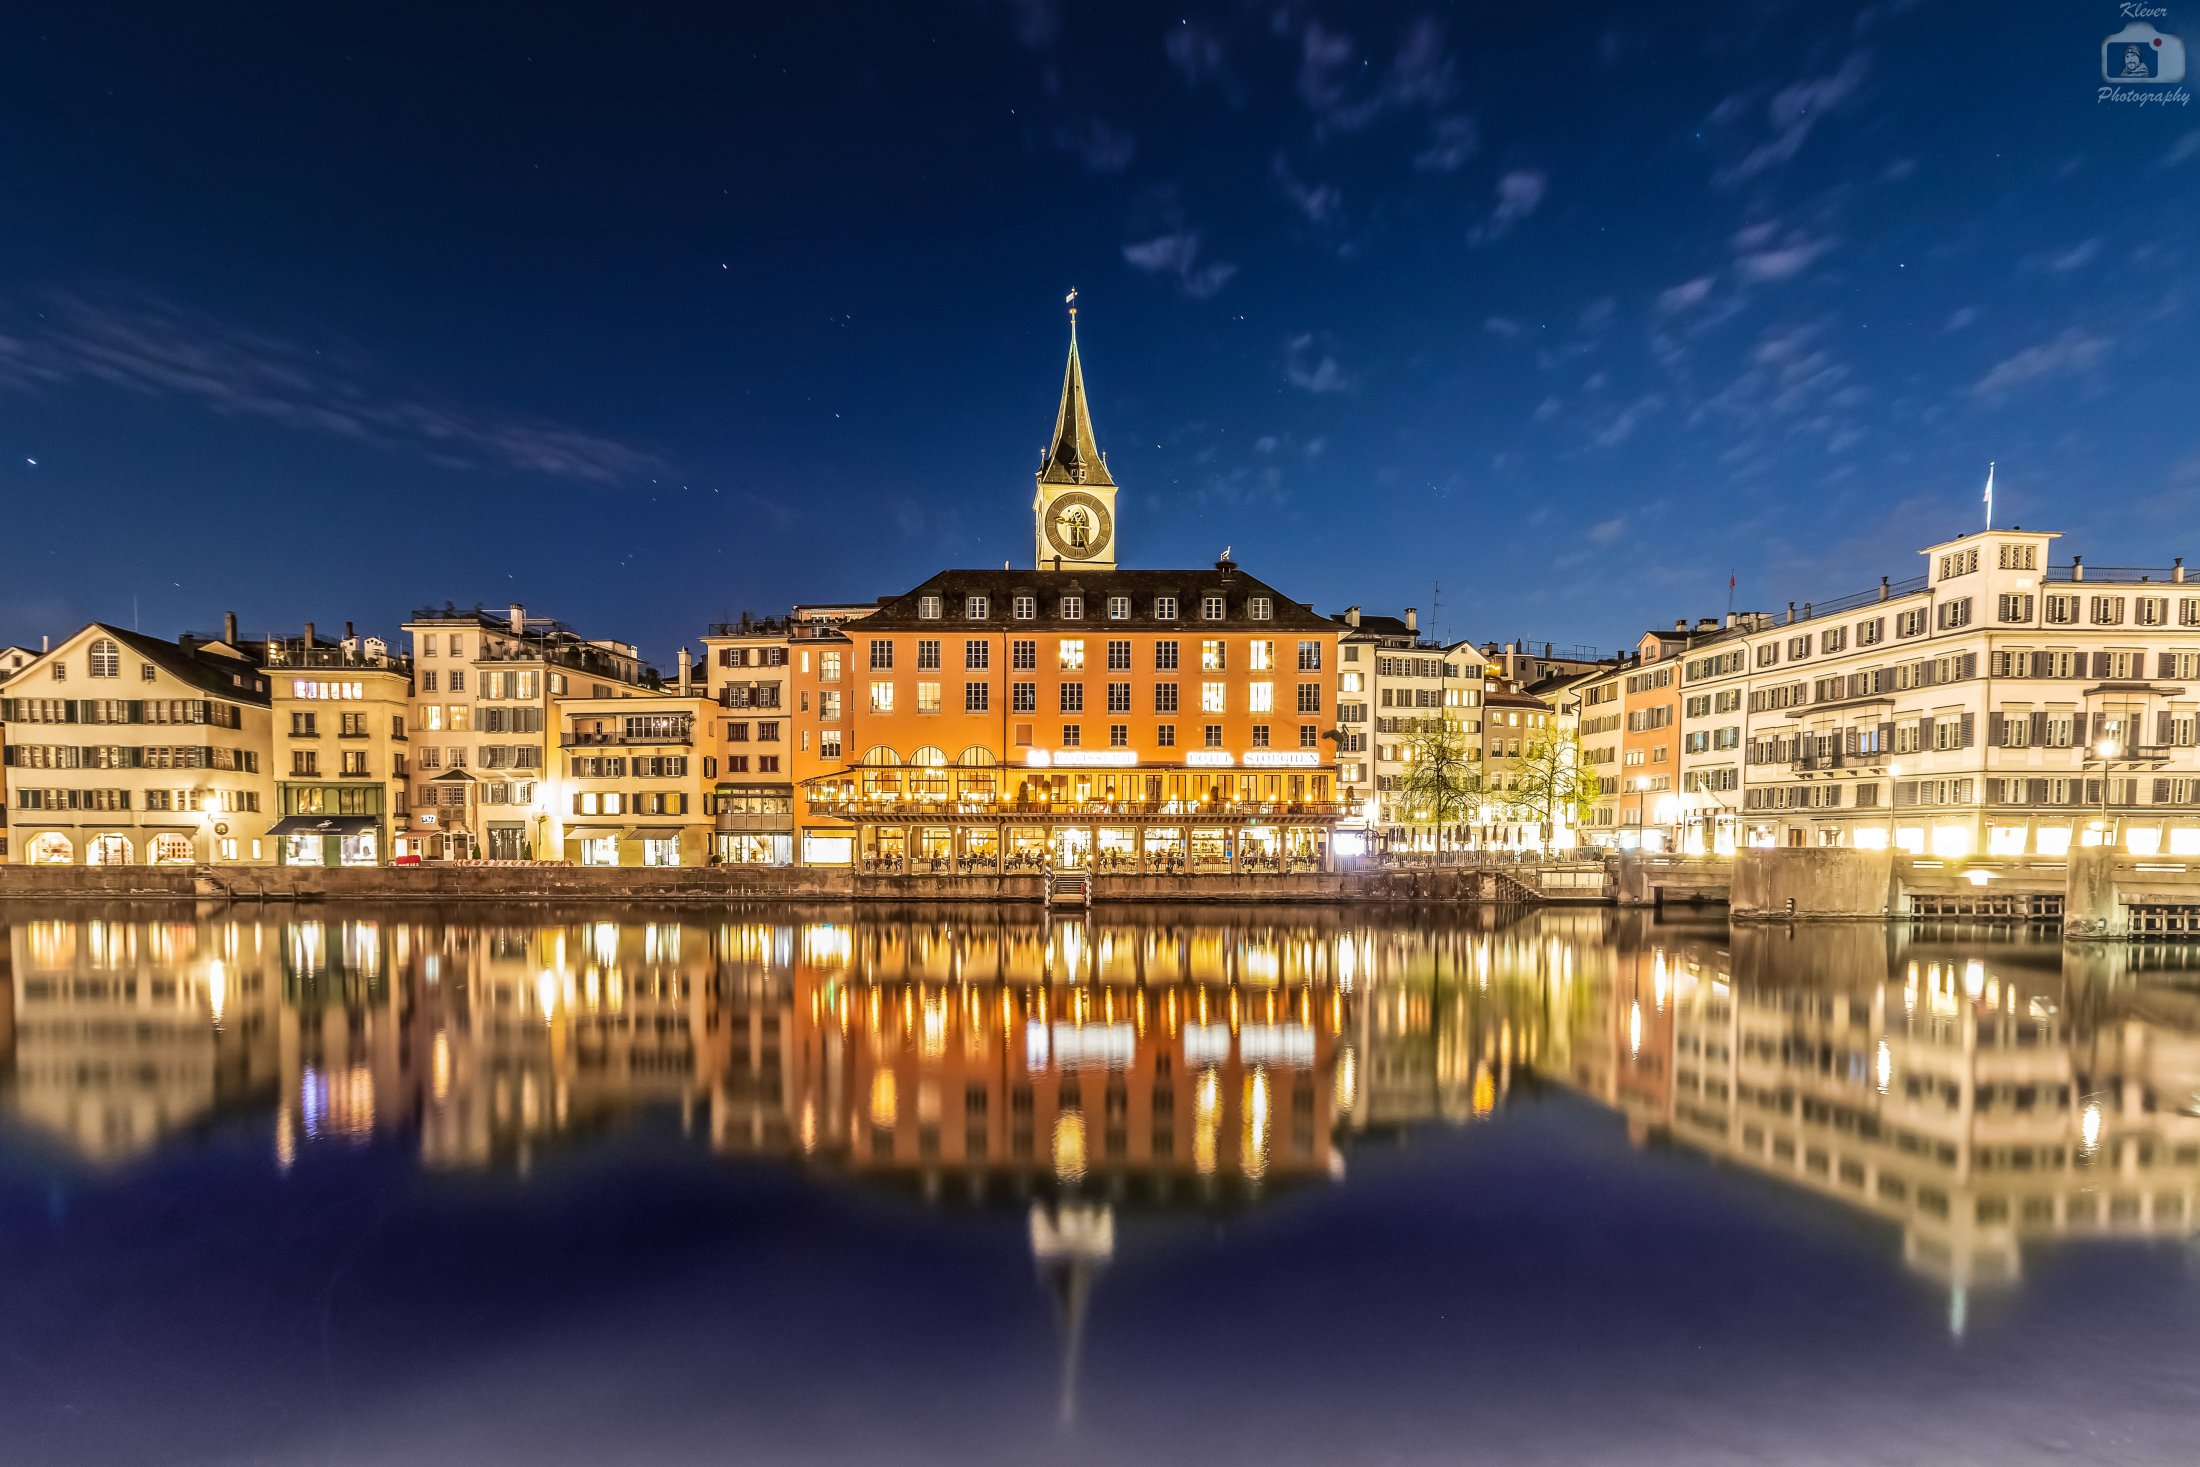 Zuerich at Night